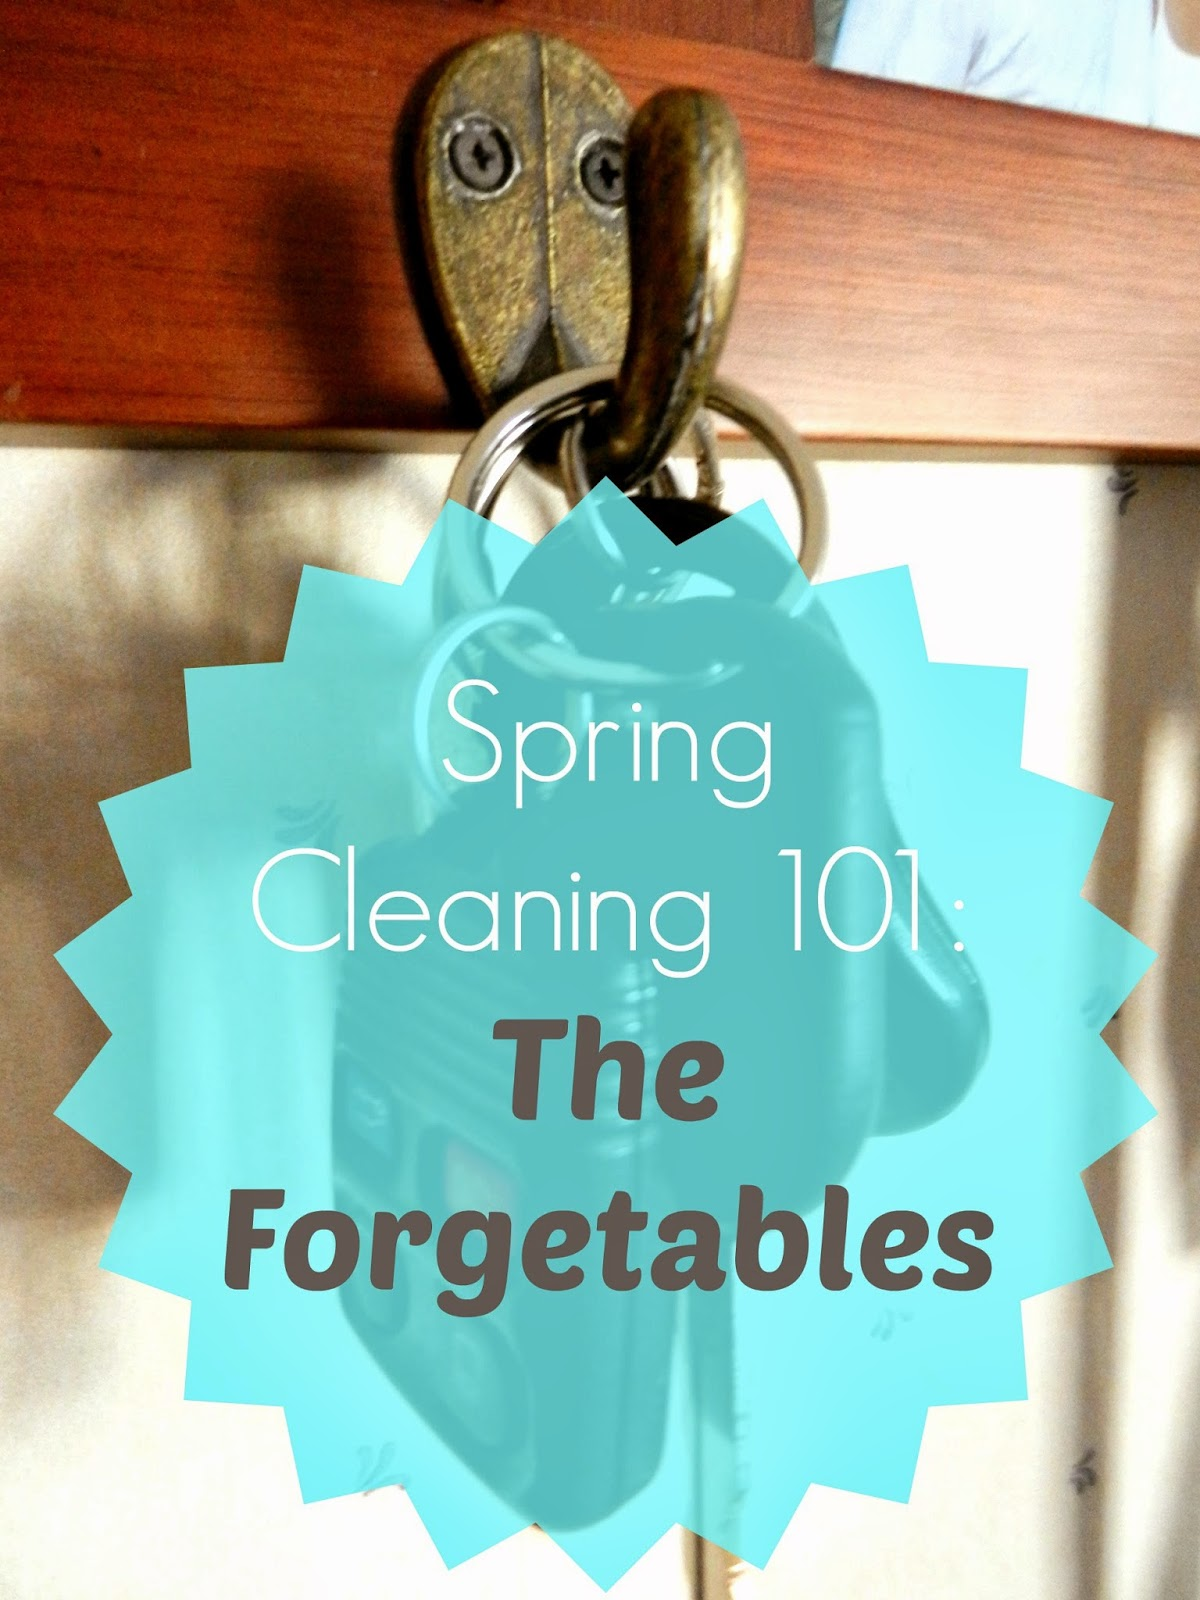 Spring Cleaning 101: The Forgetables